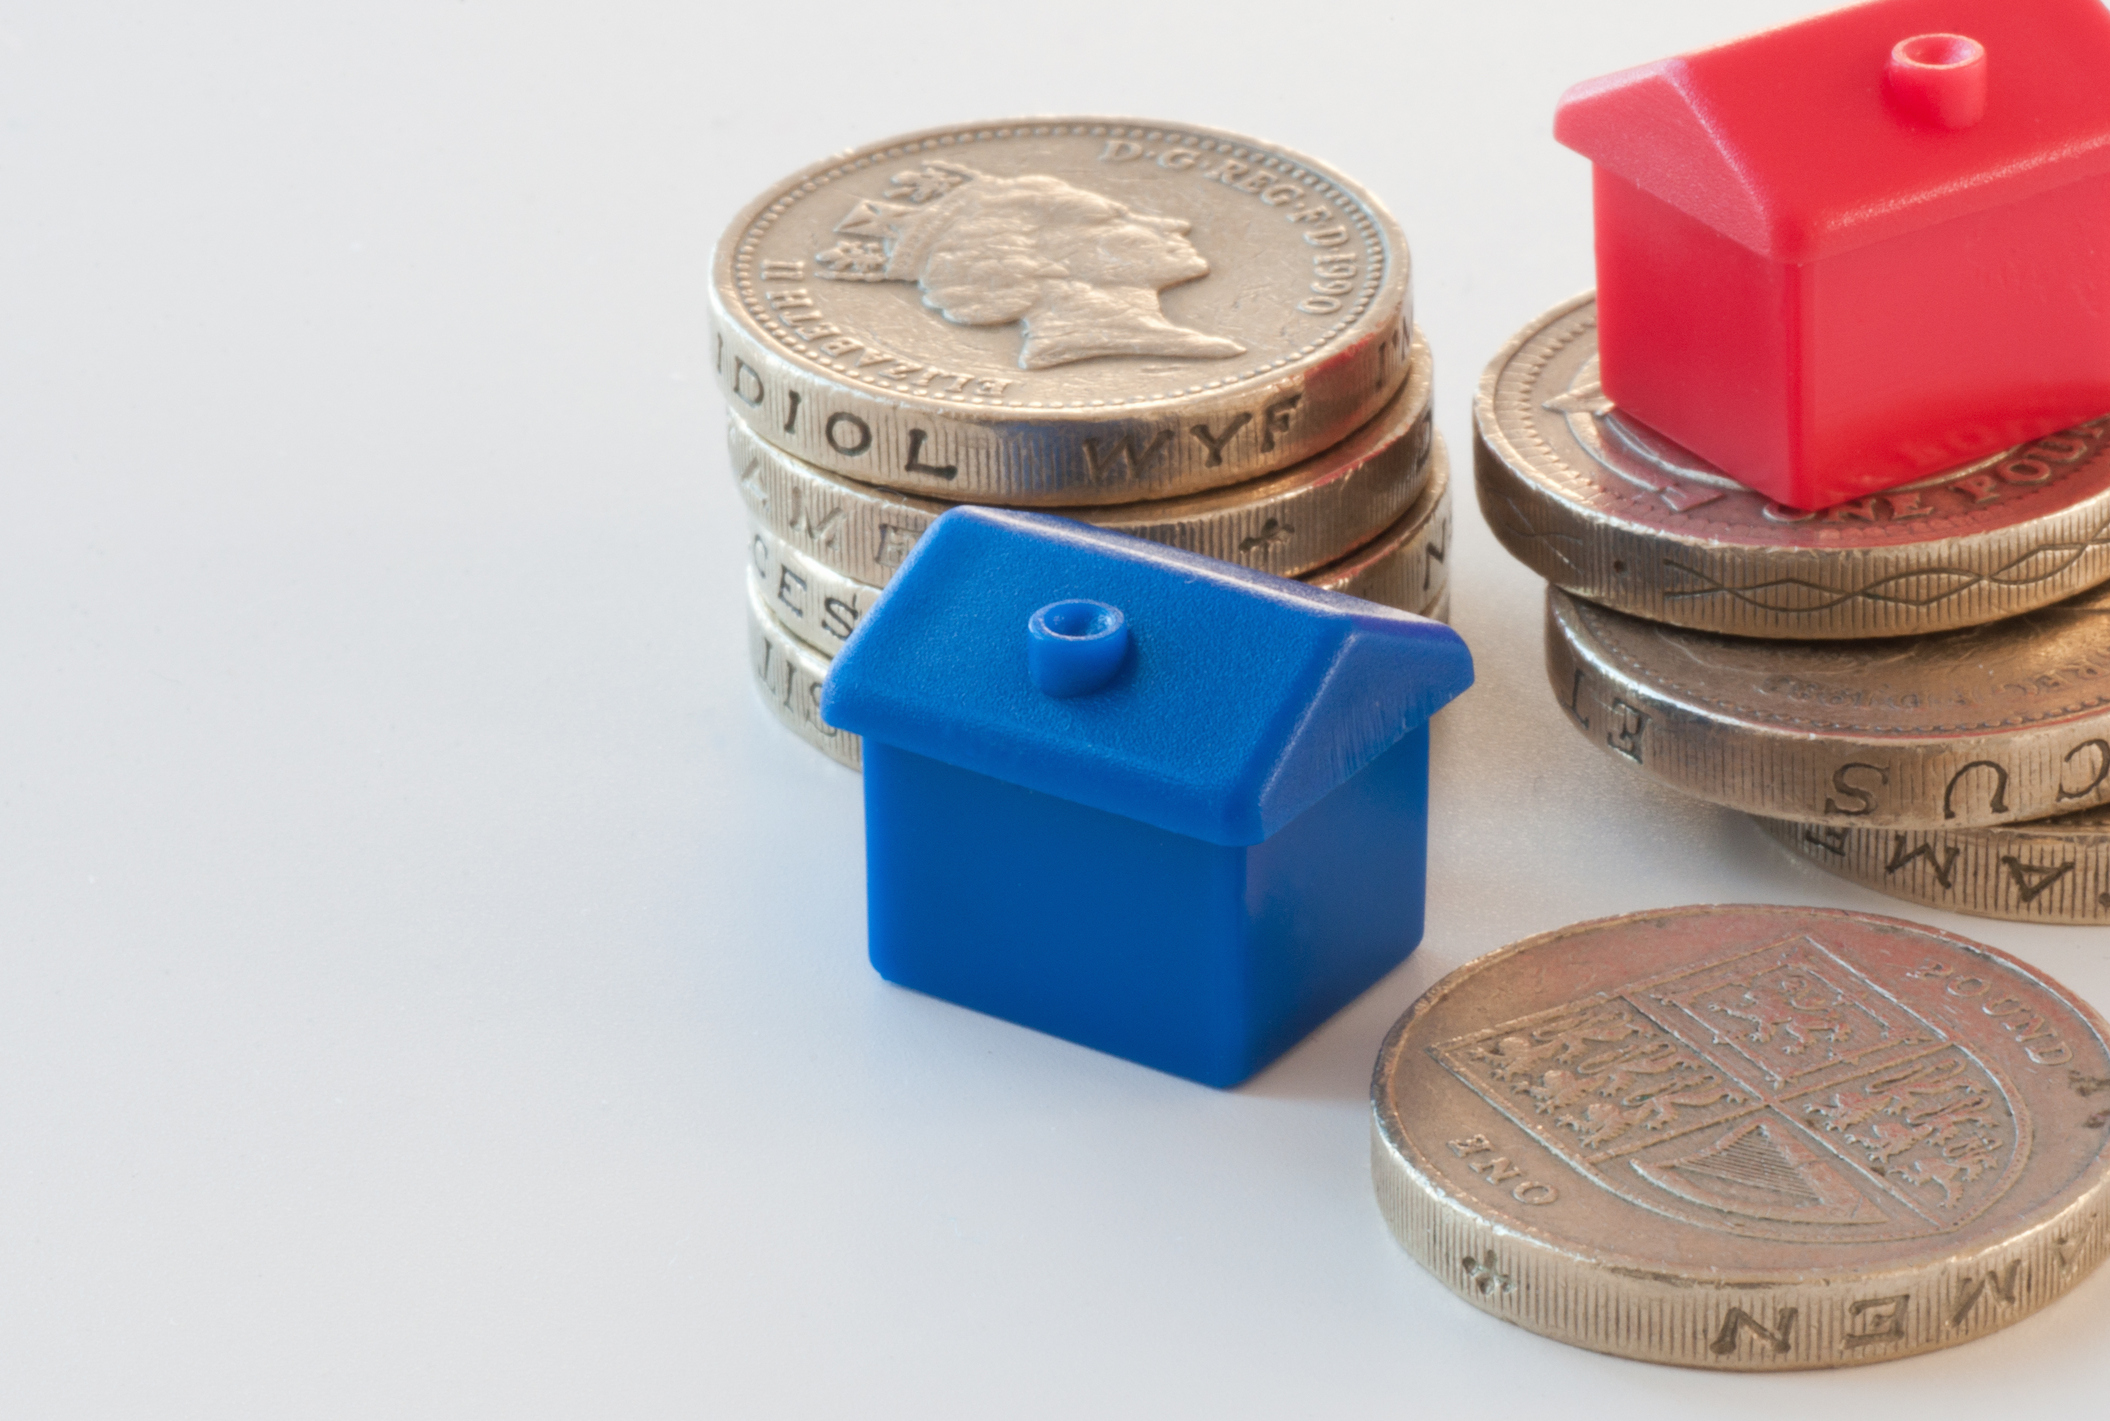 Labour calls for three weeks rent deposit